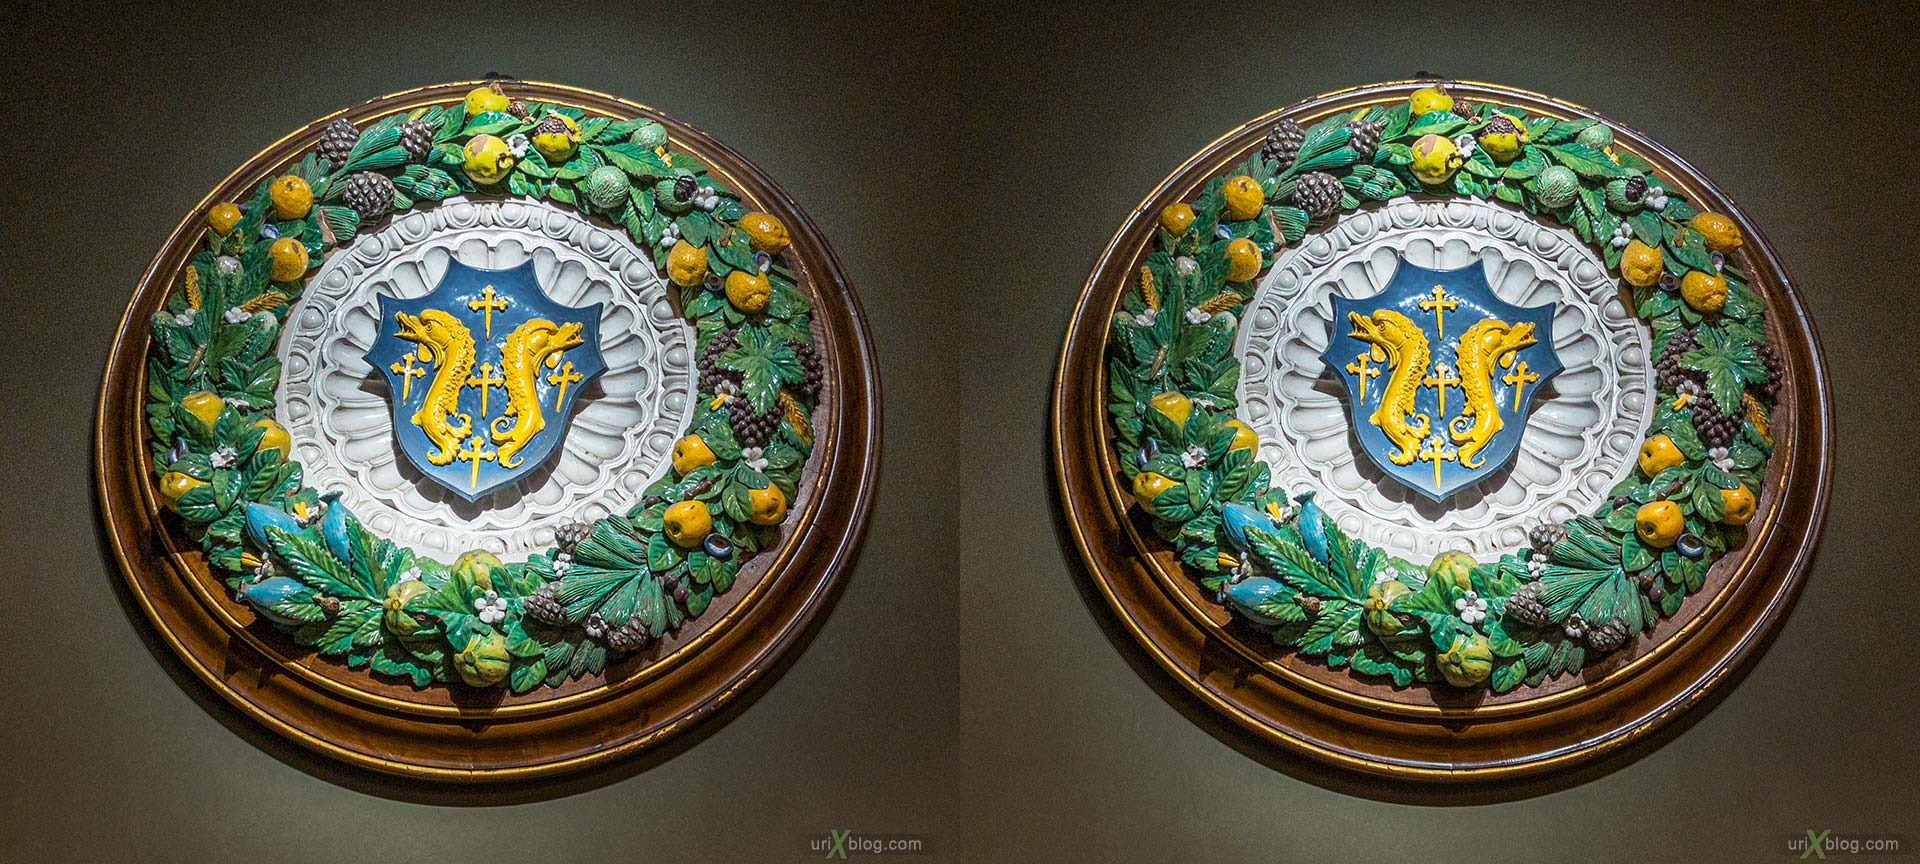 coat of arms, crest, glazed terracotta, tondo, garland, Uffizi Gallery, Contini Bonacossi Collection, Giovanni della Robbia, Florence, Firenze, Italy, 3D, stereo pair, cross-eyed, crossview, cross view stereo pair, stereoscopic